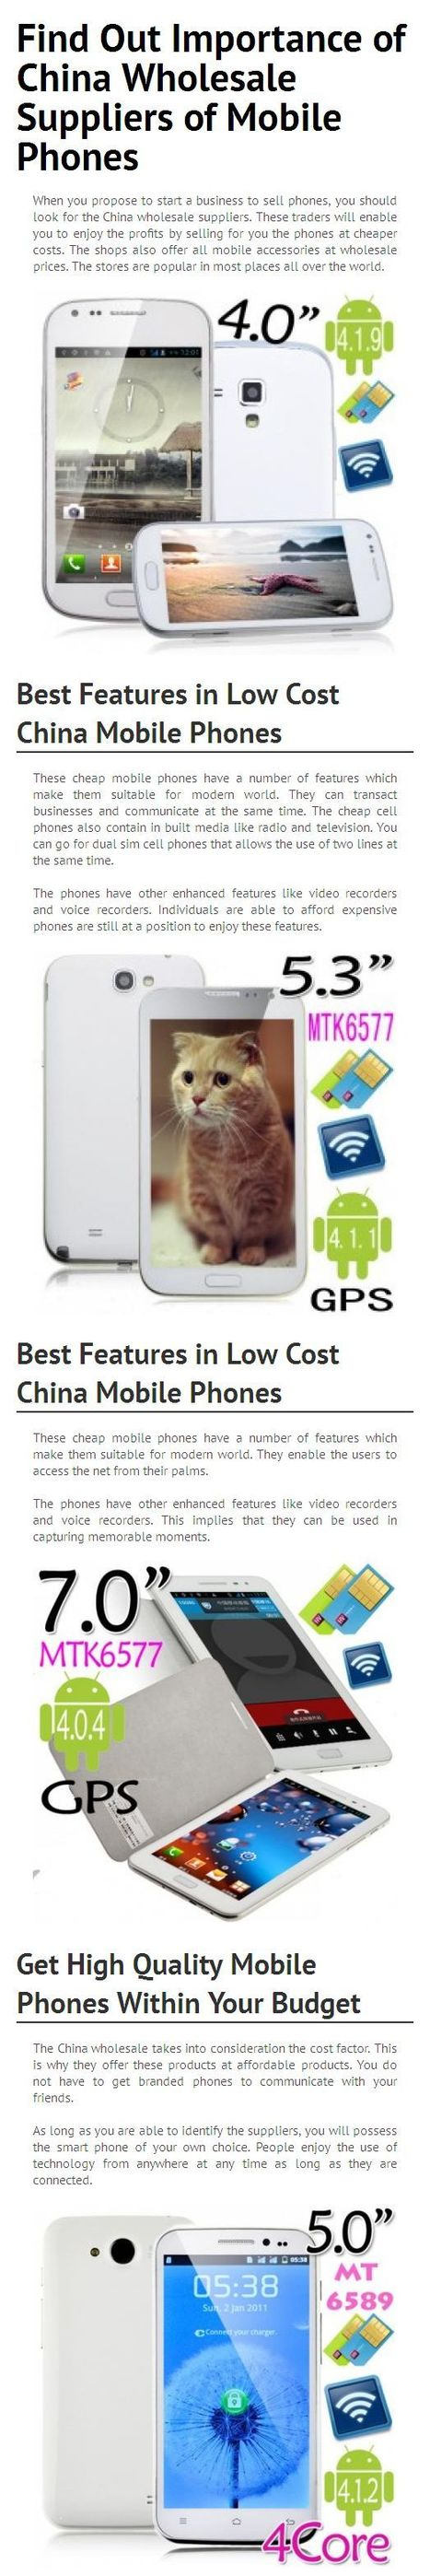 Find Out Importance of China Wholesale Suppliers of Mobile Phones | China Wholesale Suppliers | Scoop.it